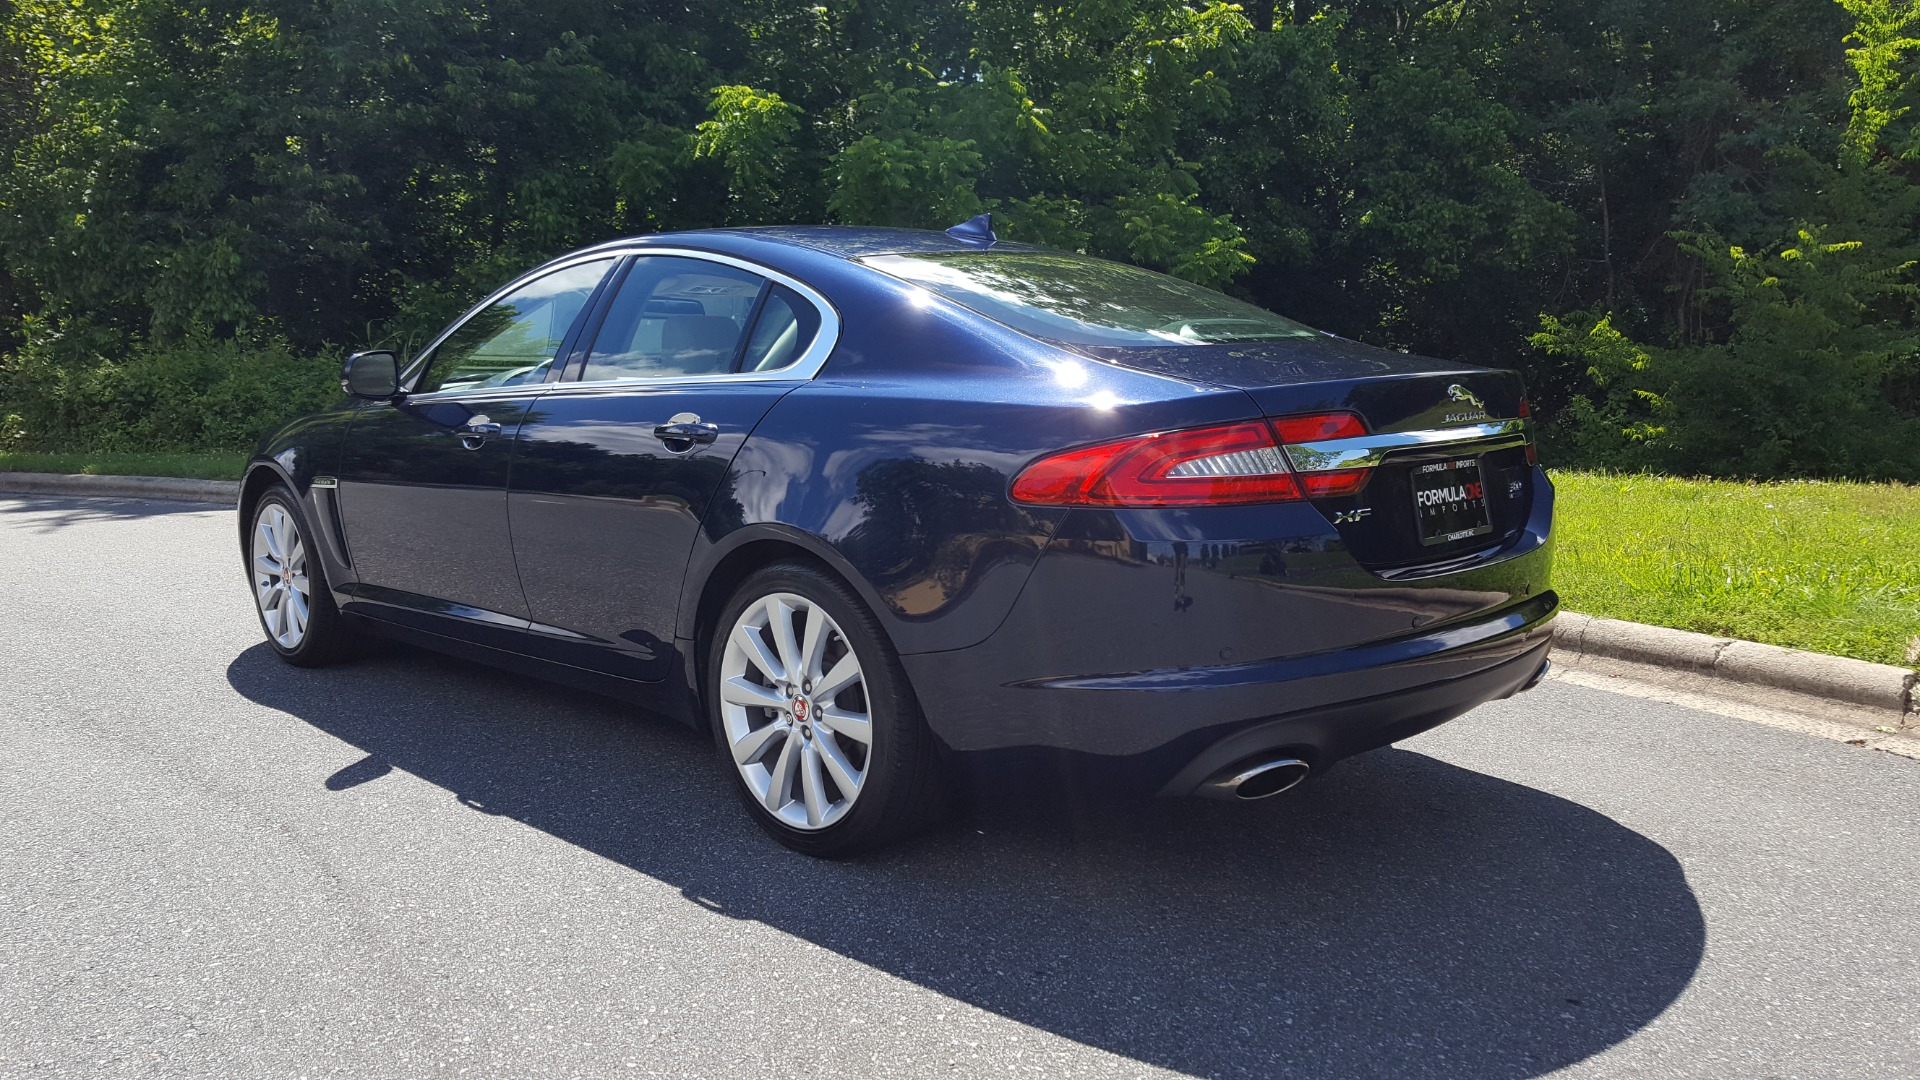 Used 2014 Jaguar XF V6 SC AWD PREMIUM / NAV / COLD CLIMATE PKG / VISION / REARVIEW for sale $18,995 at Formula Imports in Charlotte NC 28227 3